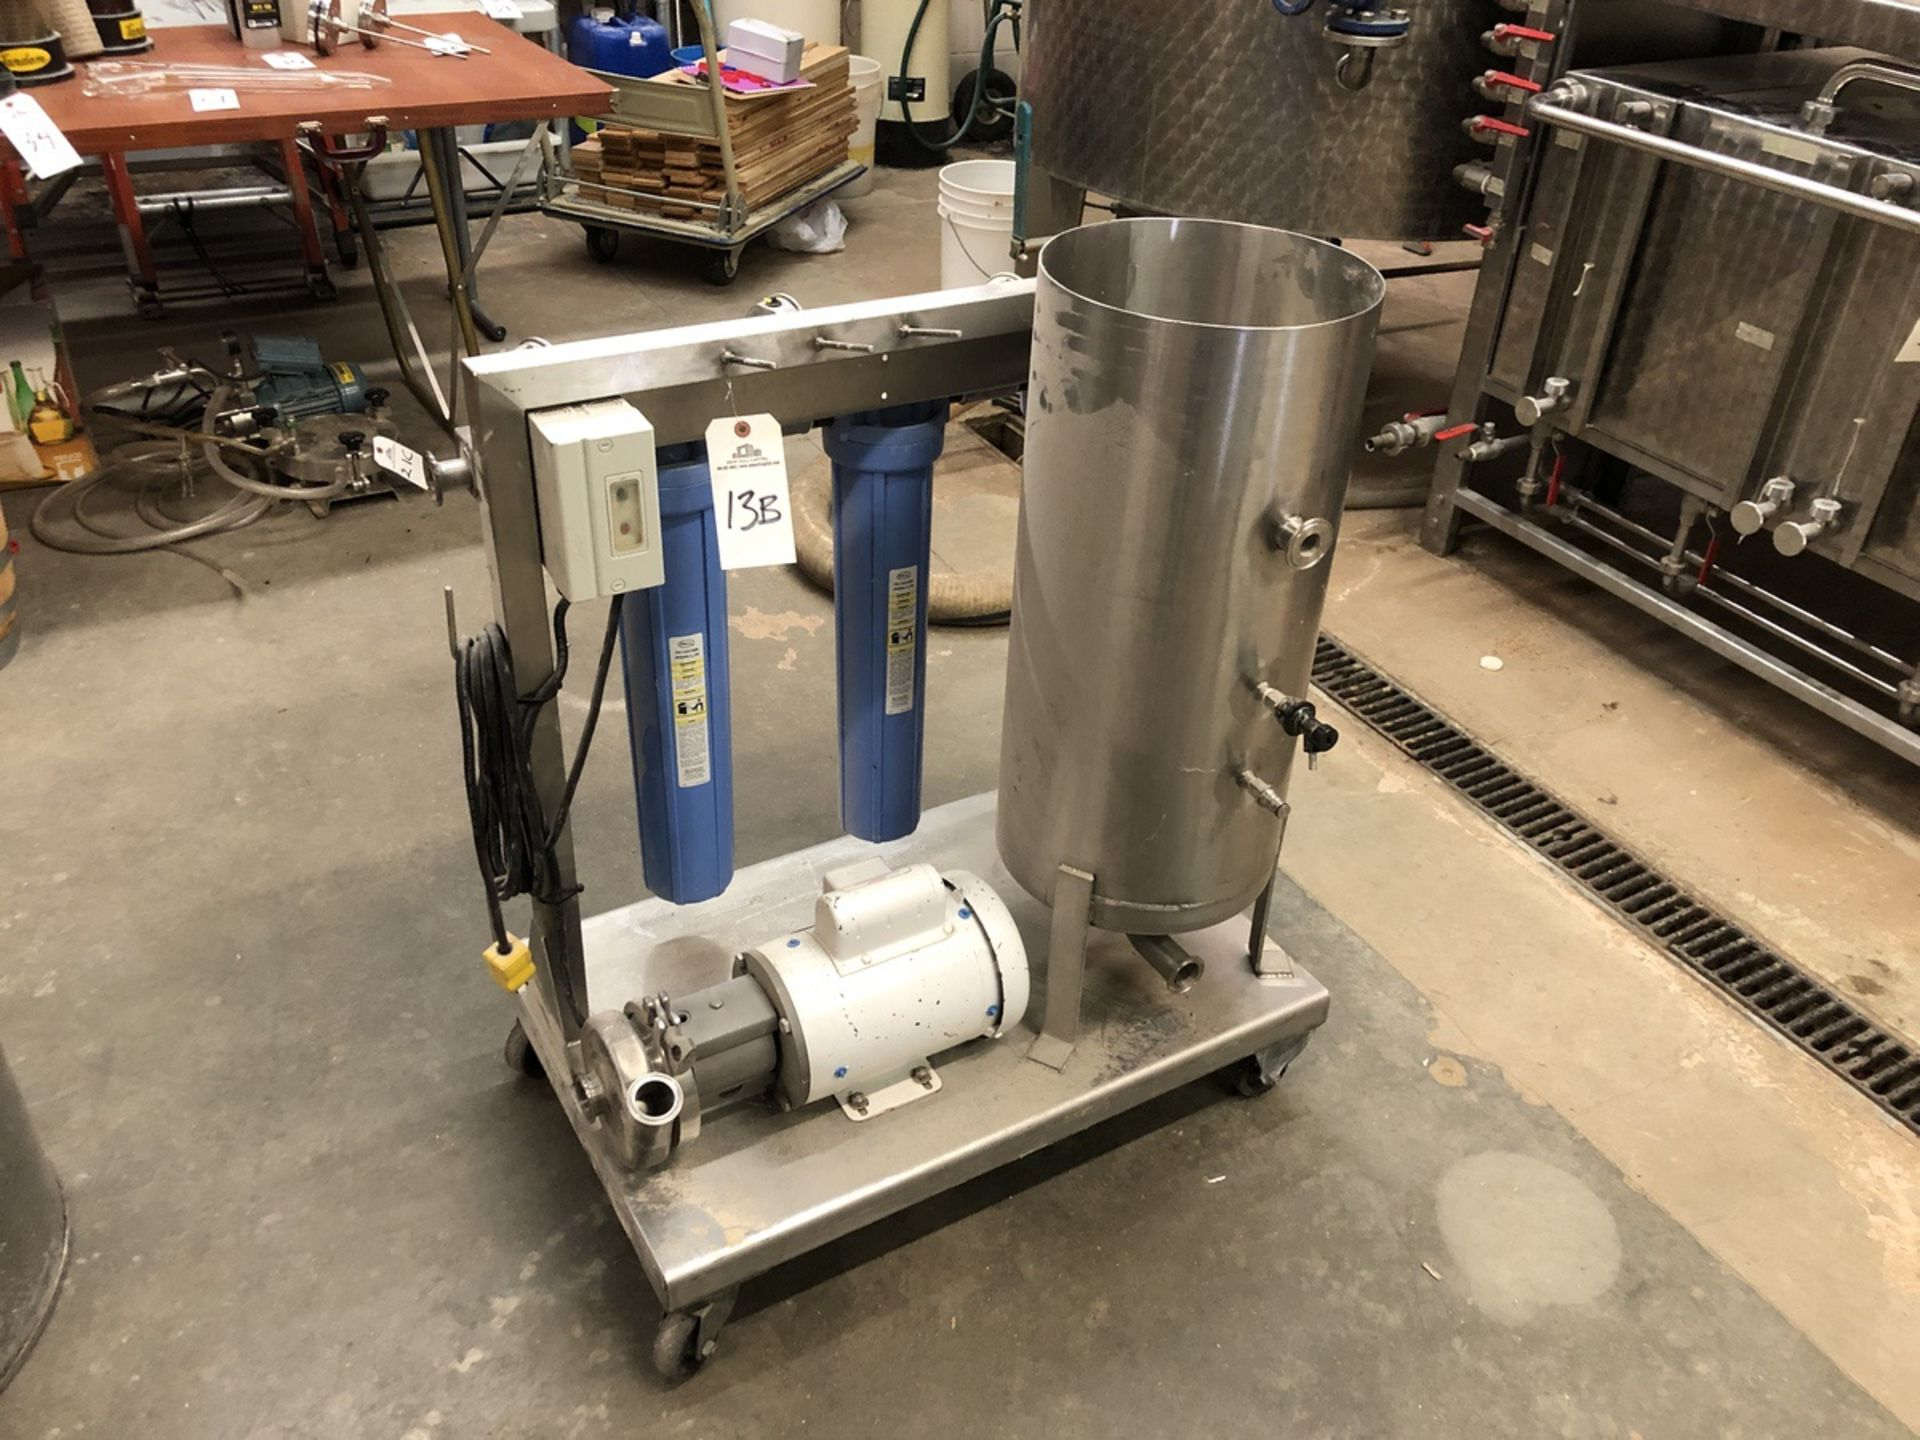 Lot 13B - Stainless Steel Mixing Skid with Centrifugal Pump and Cartridge (Addi | Sub to Bulk | Rig Fee: $50